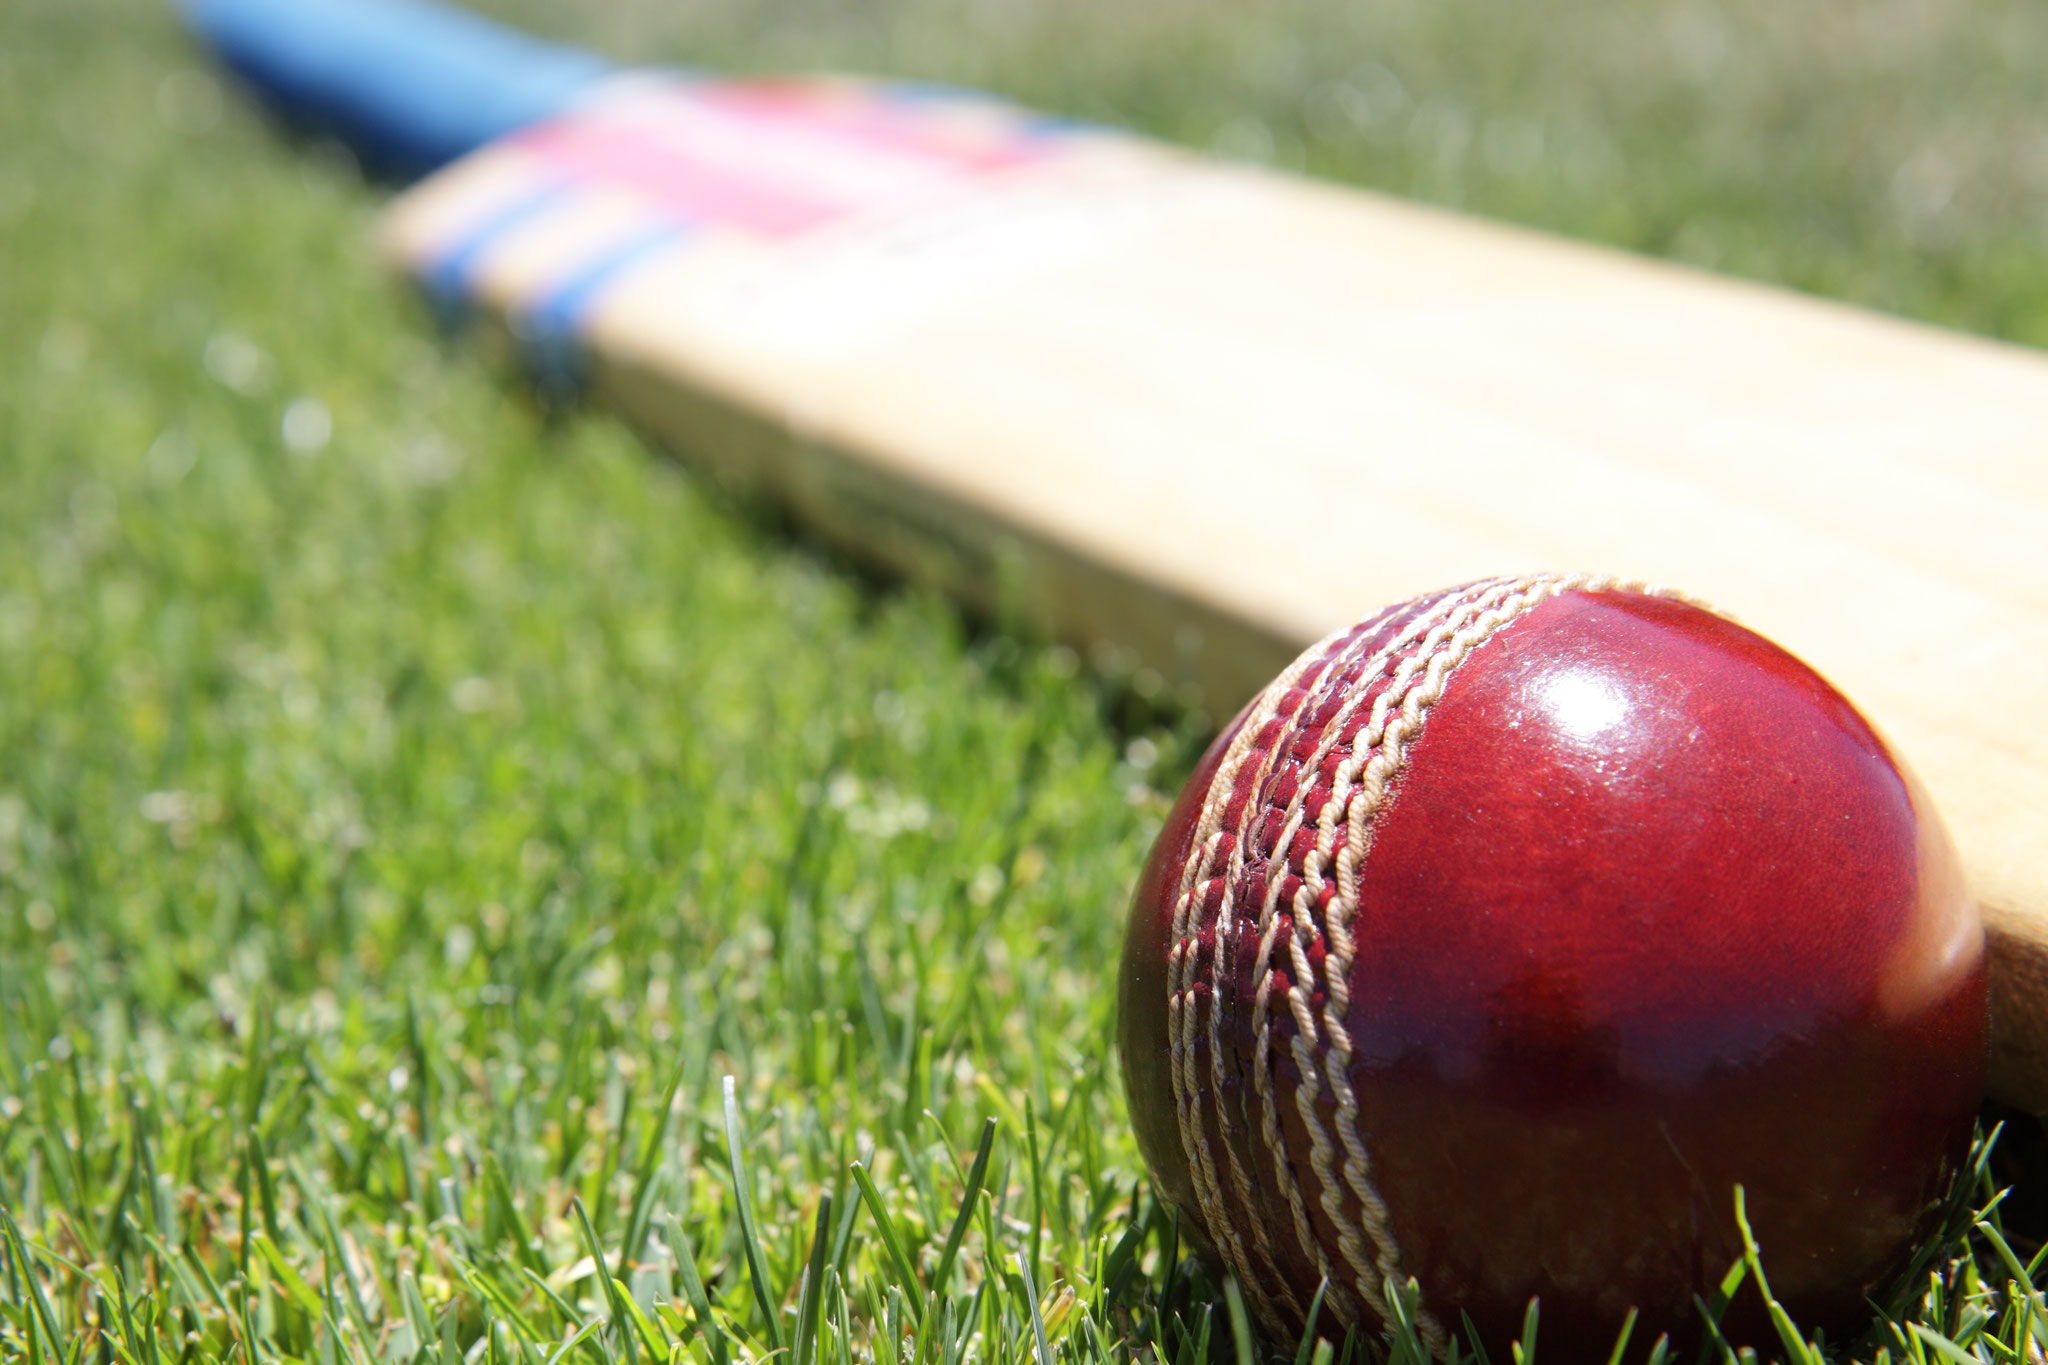 Tipp 6: Cricket-Fest, Sa, 17.8., 14.30 bis 17.30 Uhr, Place Internationale, Brachfläche am U-Bhf. Cottbusser Platz, 12619 Berlin © S.White